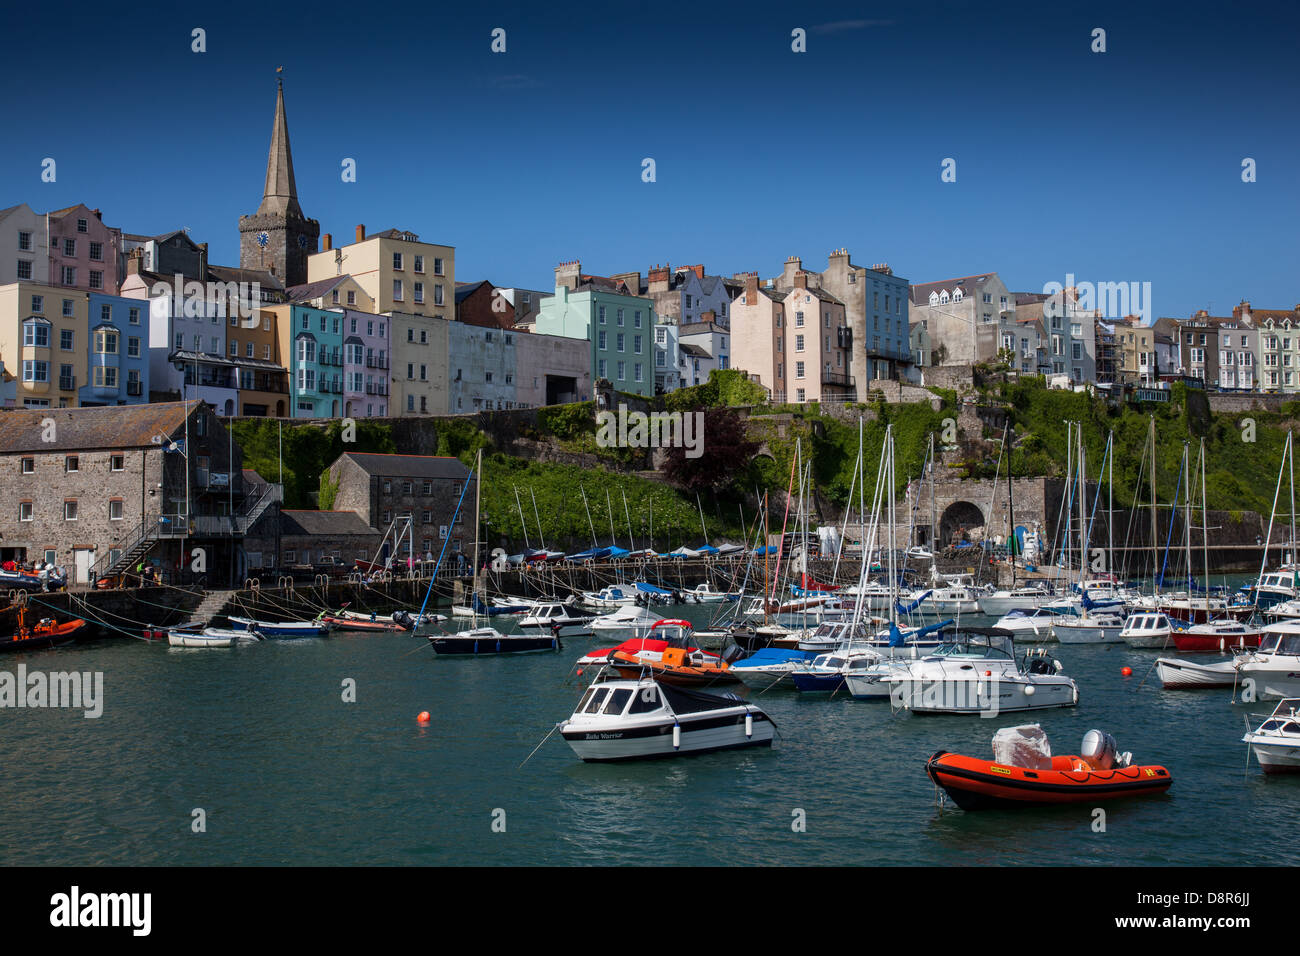 Boats moored in Tenby Harbour, Pembrokeshire, Wales - Stock Image